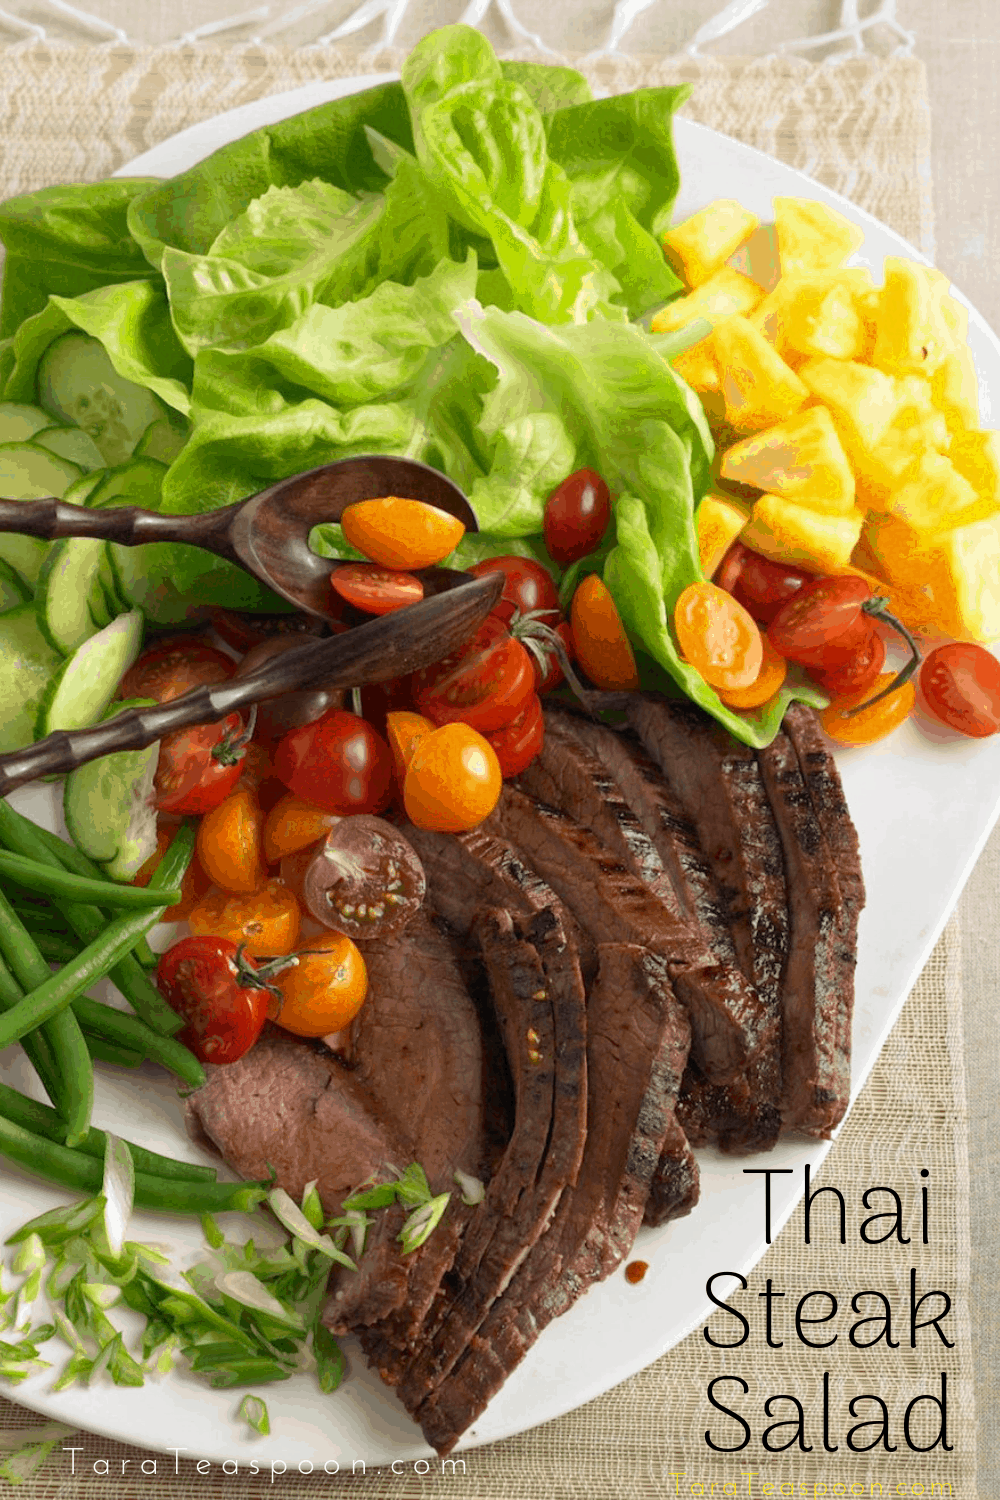 Thai steak salad on a platter